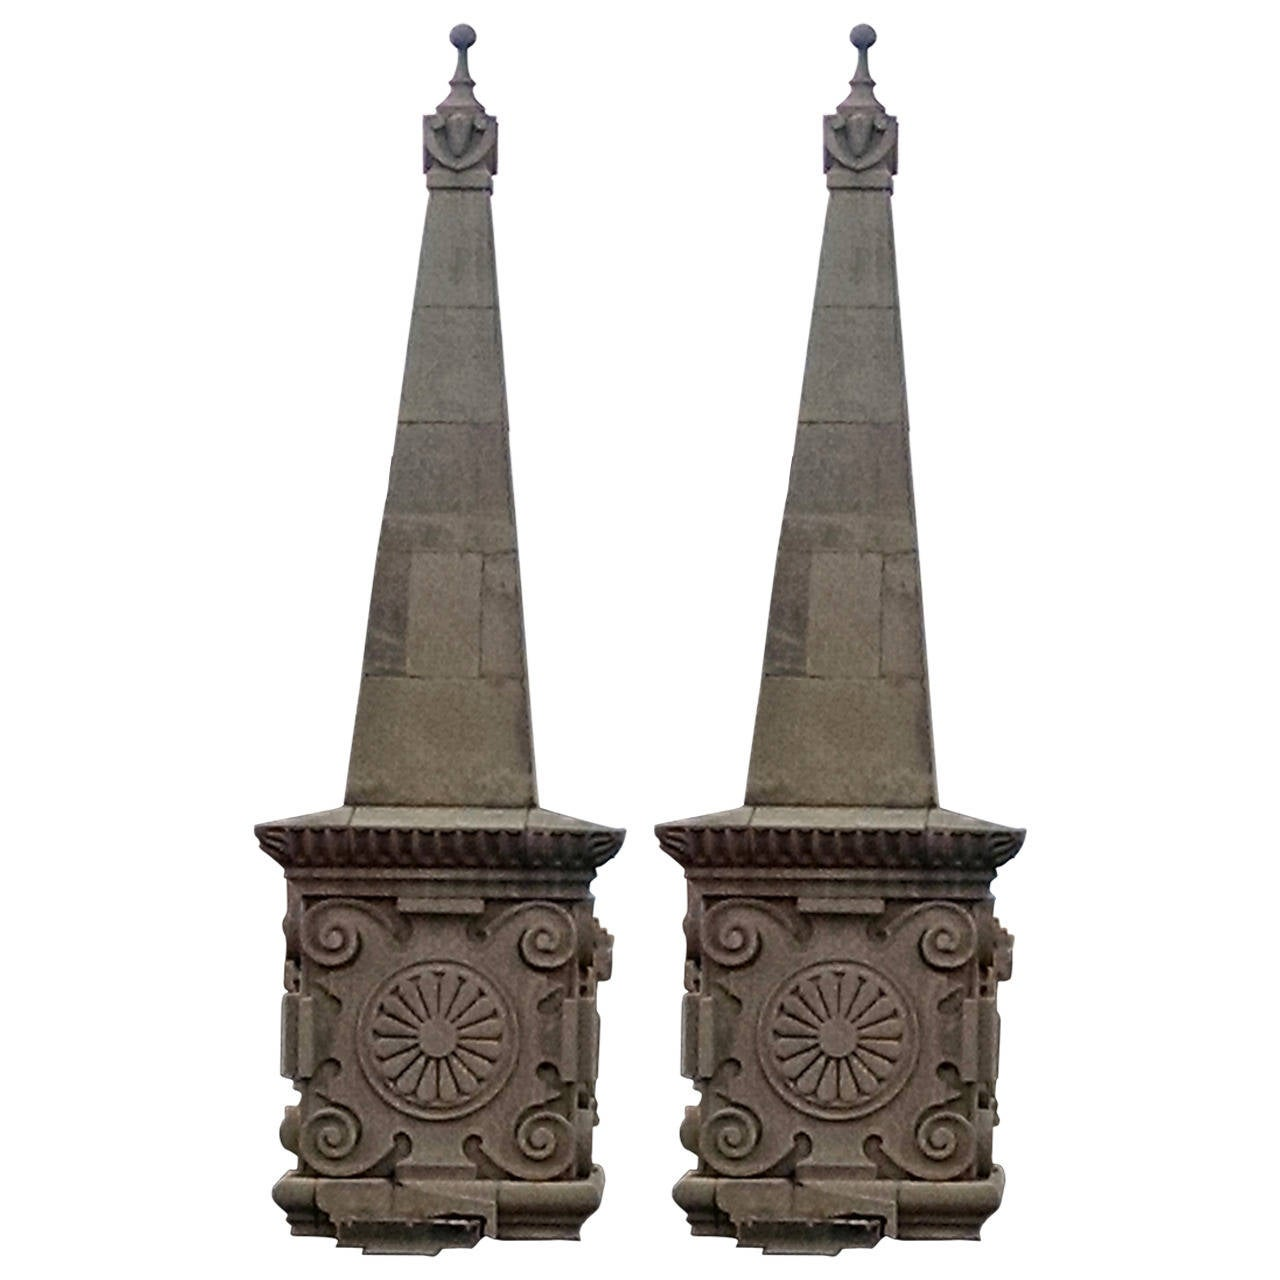 1896 Pair of Hand-Carved Limestone Obelisk Finials with Bases